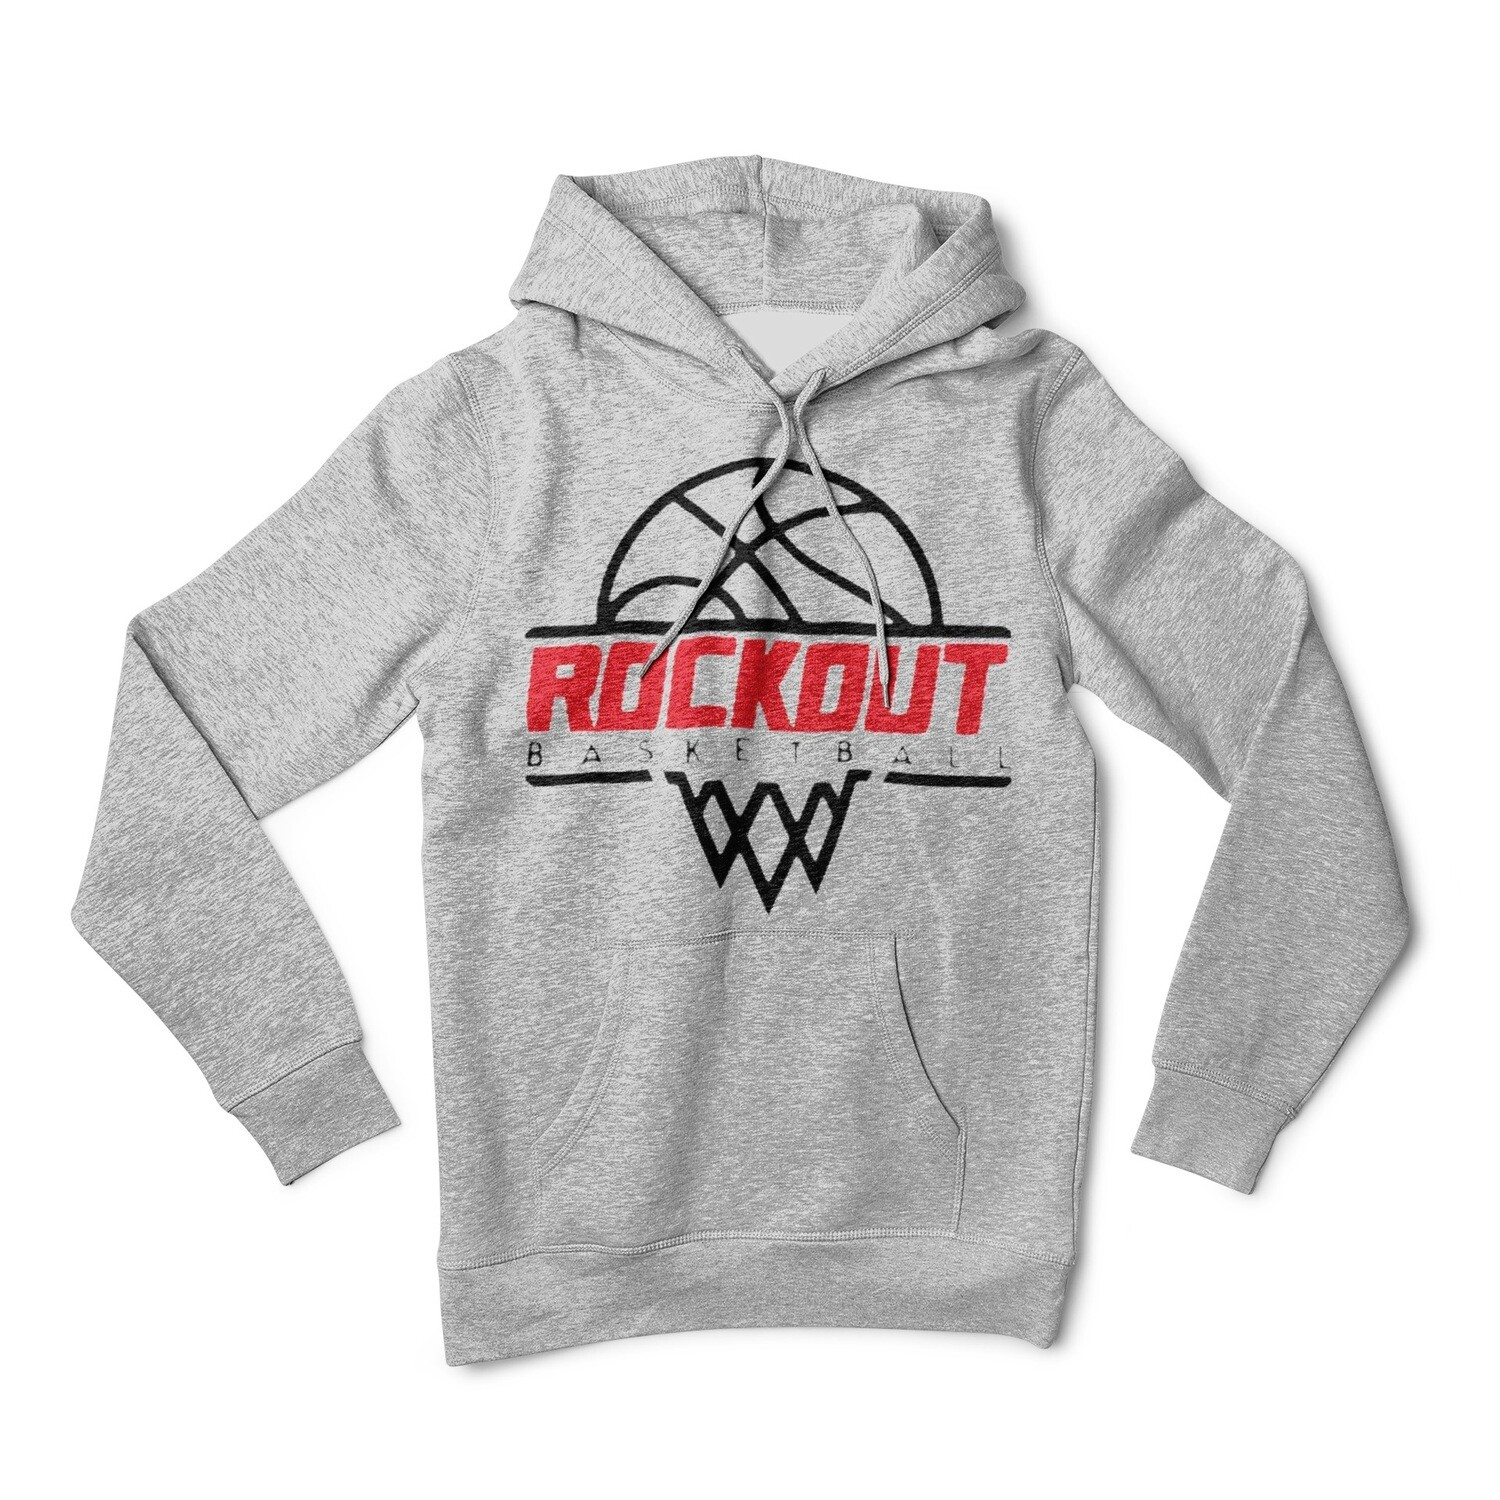 Rock Out Basketball Hoodie